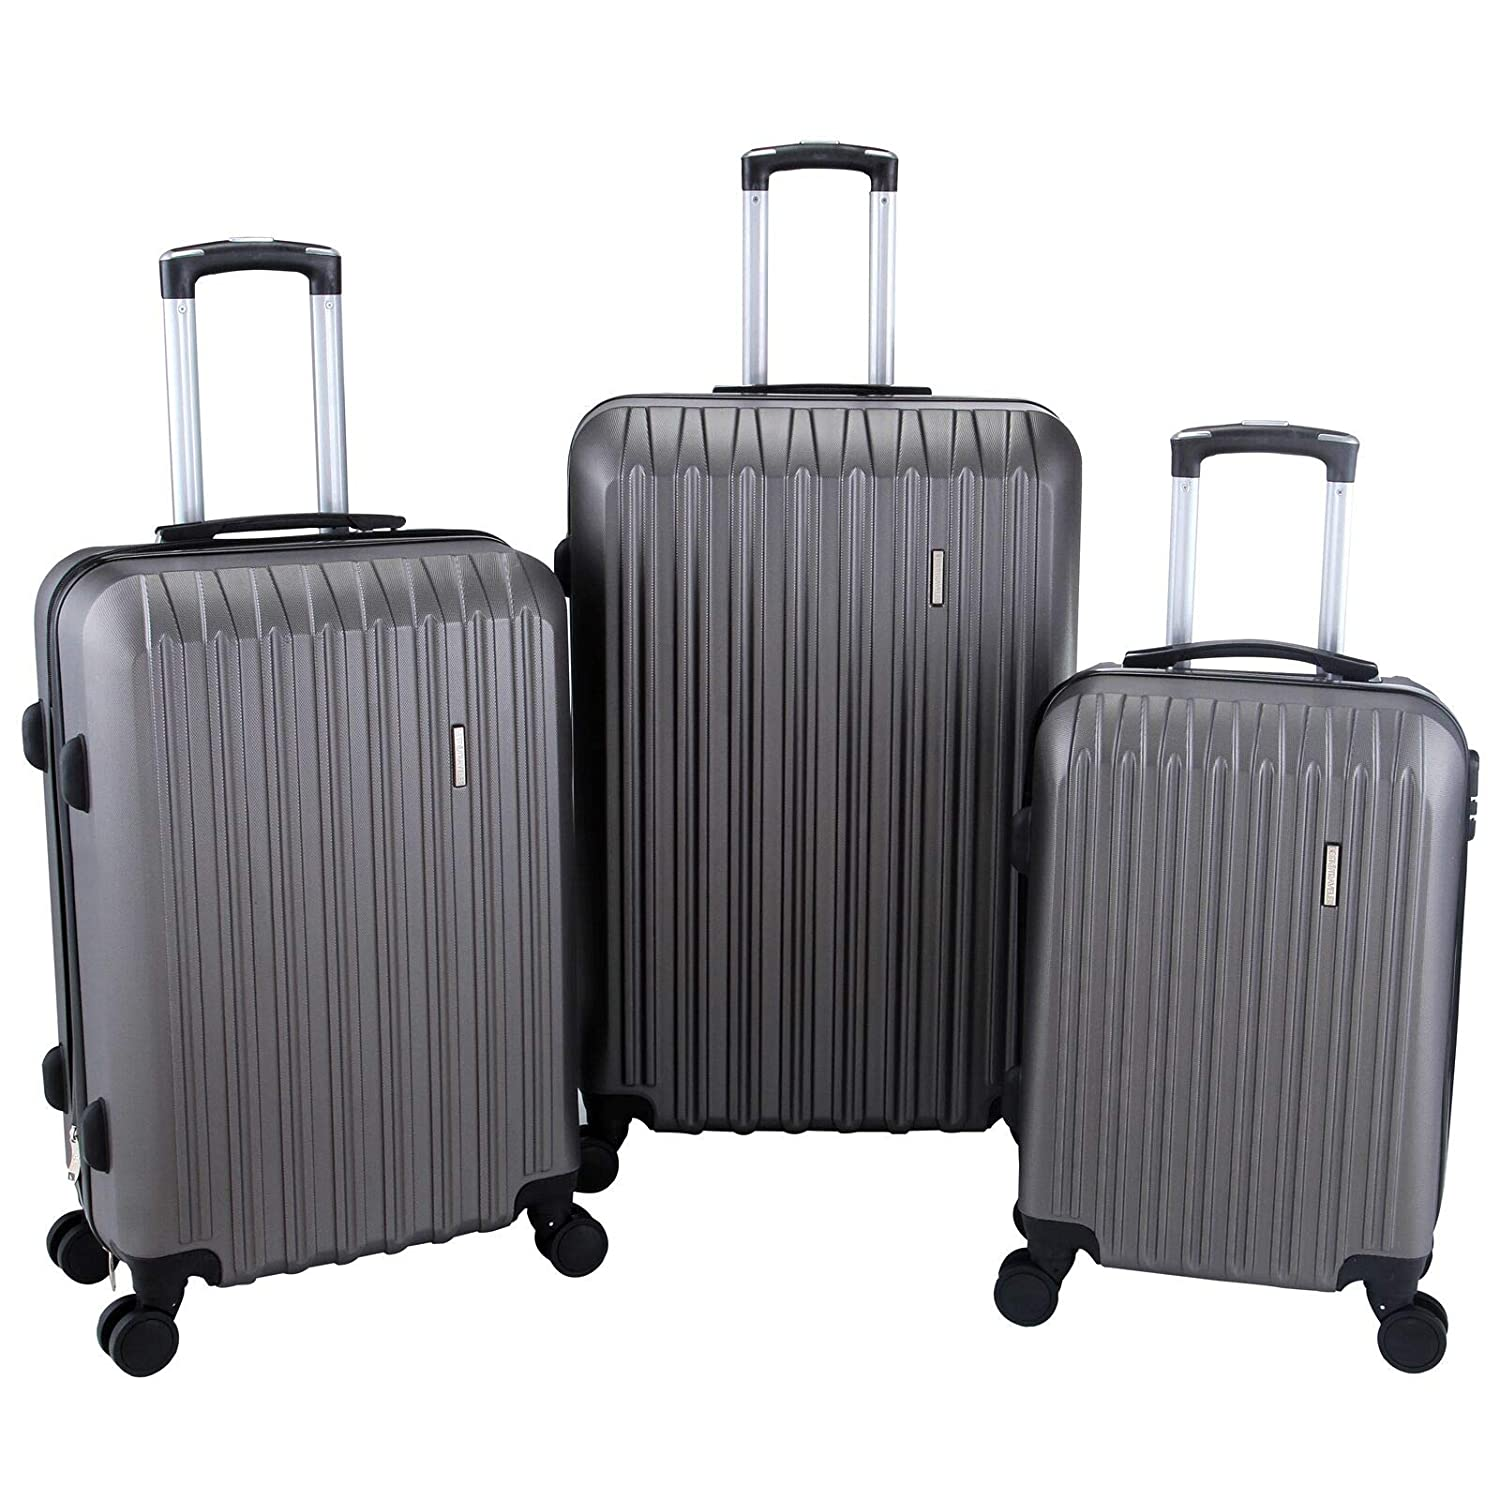 Murtisol 3 Pieces ABS Luggage Sets Hardside Spinner Lightweight Durable Spinner Suitcase 20 24 28, Black